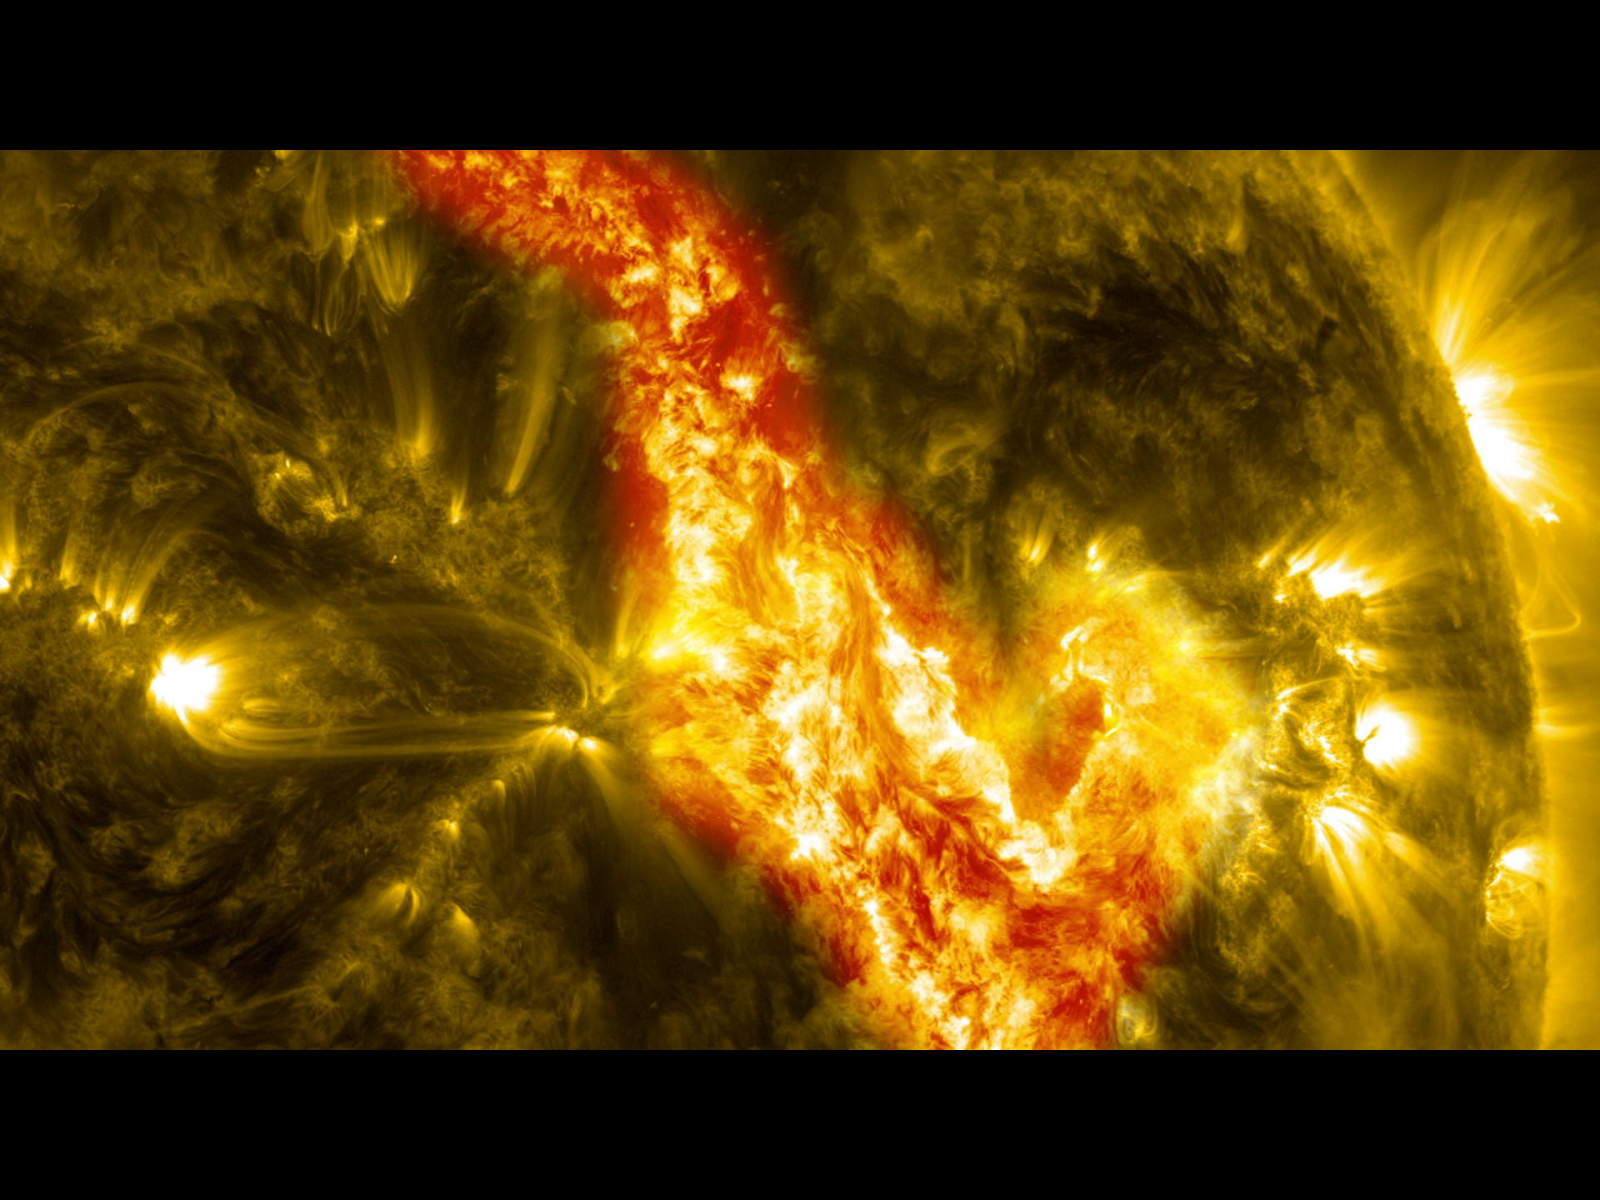 Canyon of Fire: Magnetic Filament on the Sun